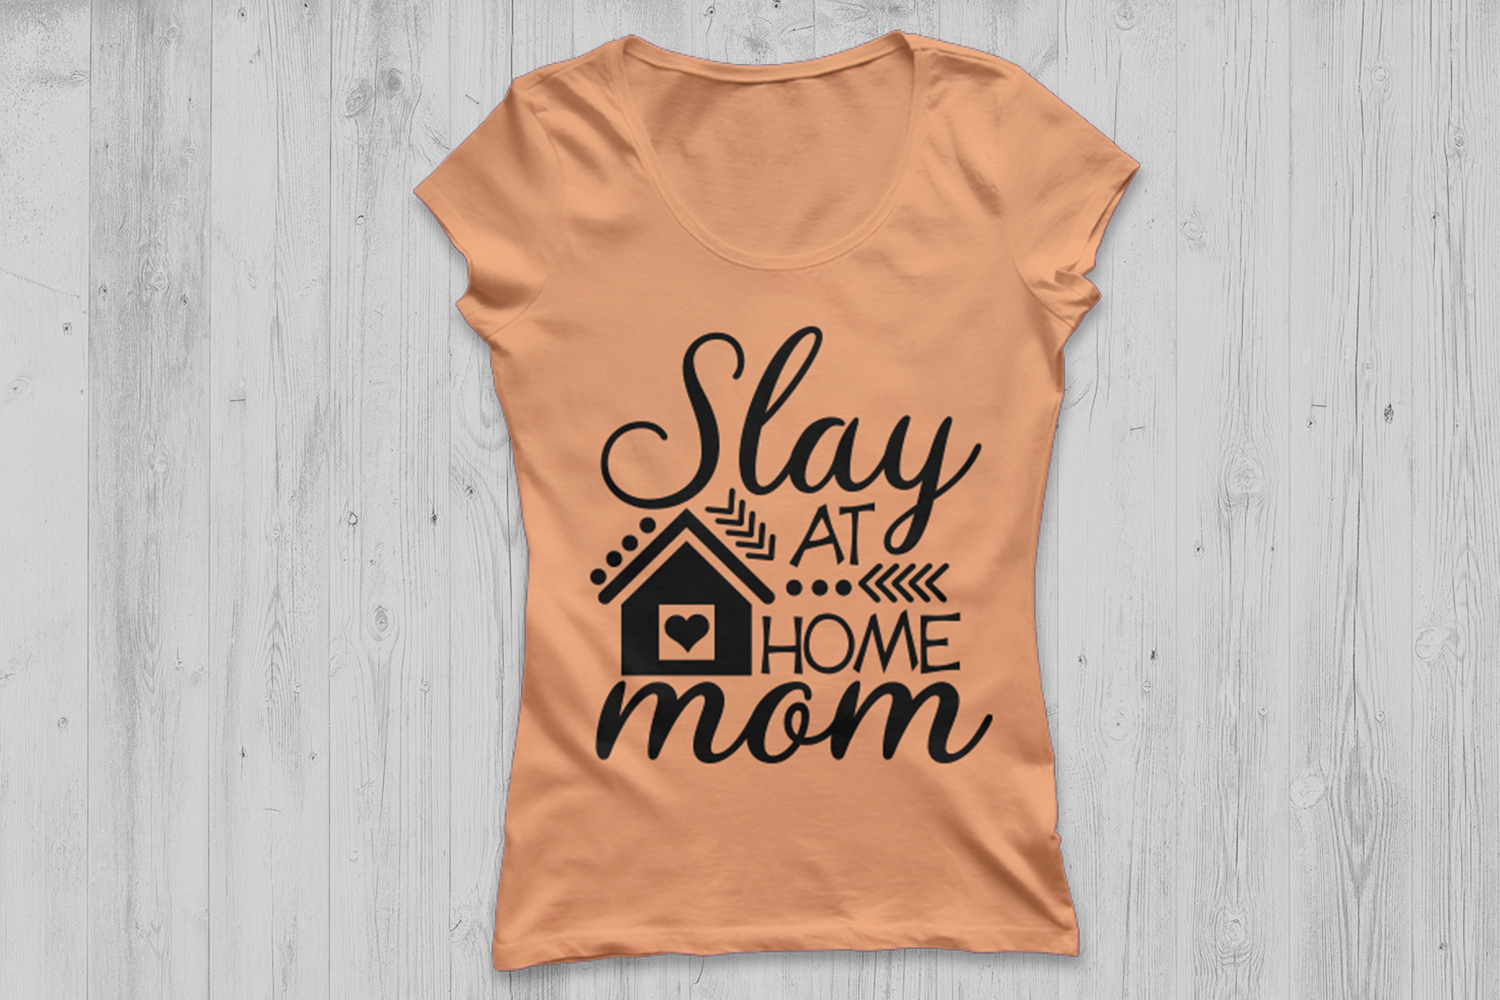 Slay At Home Mom Svg, Mother's Day Svg, Mom Life Svg. example image 2